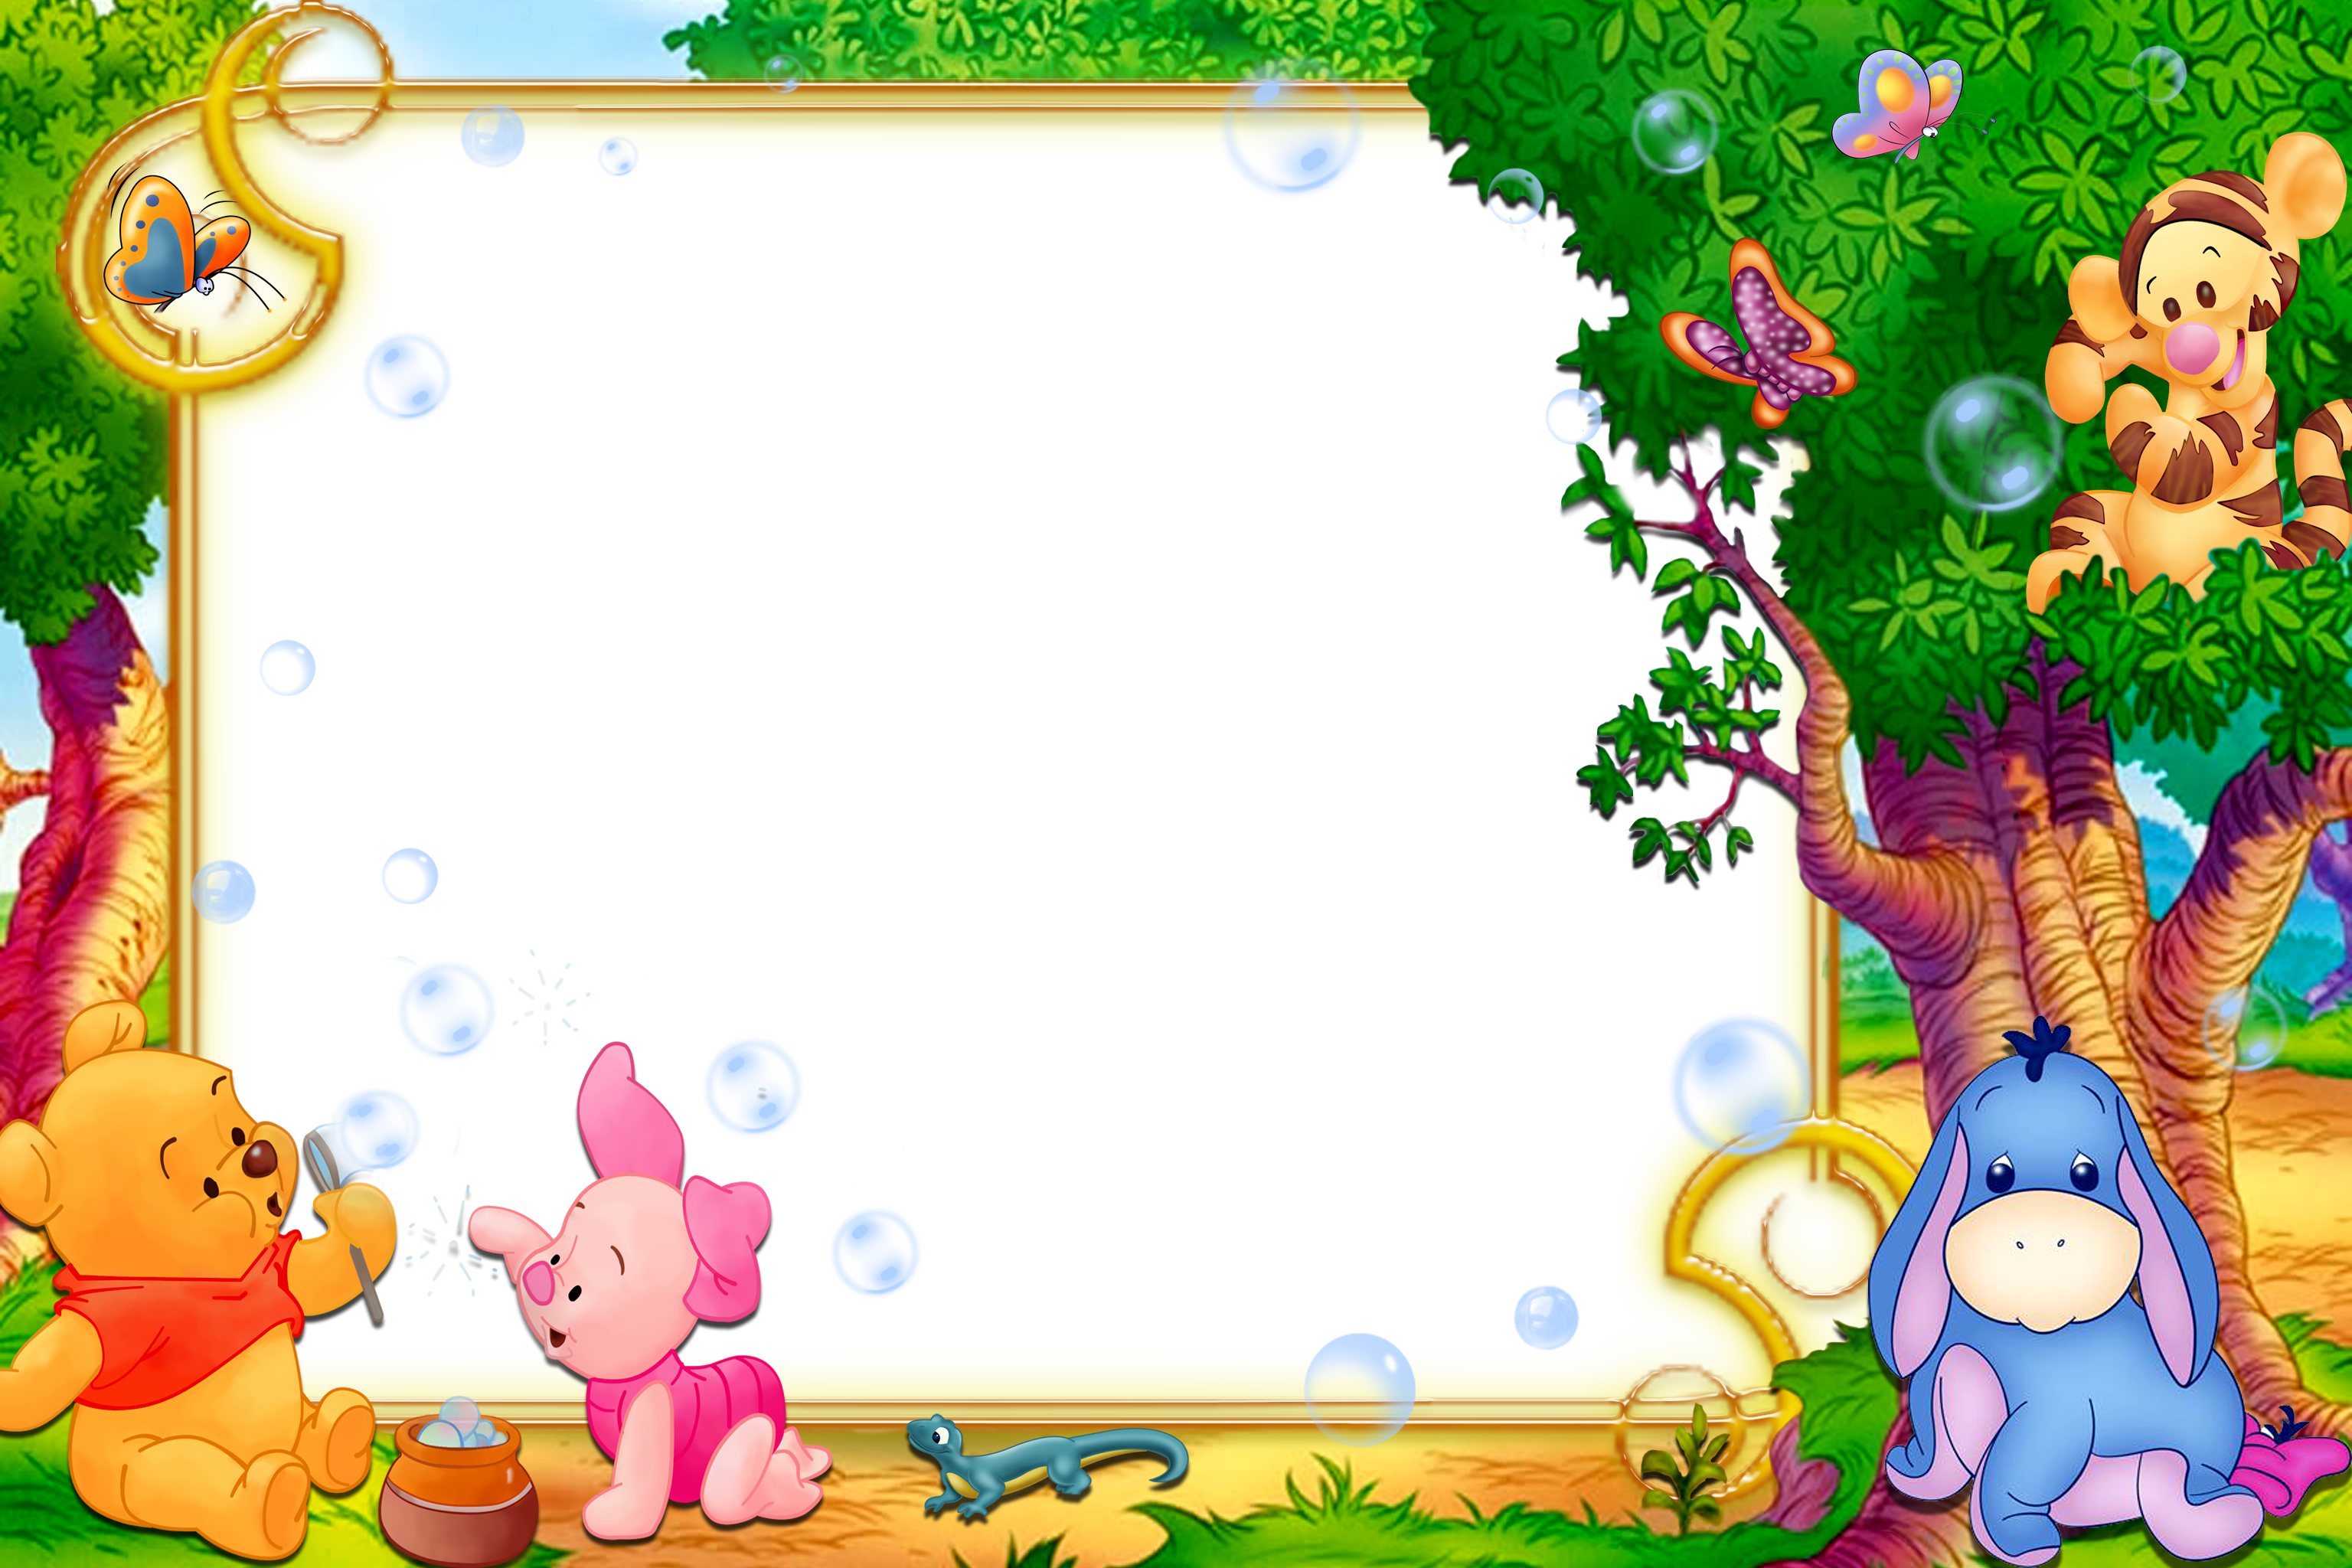 Cartoon frame png. Kids transparent with winnie